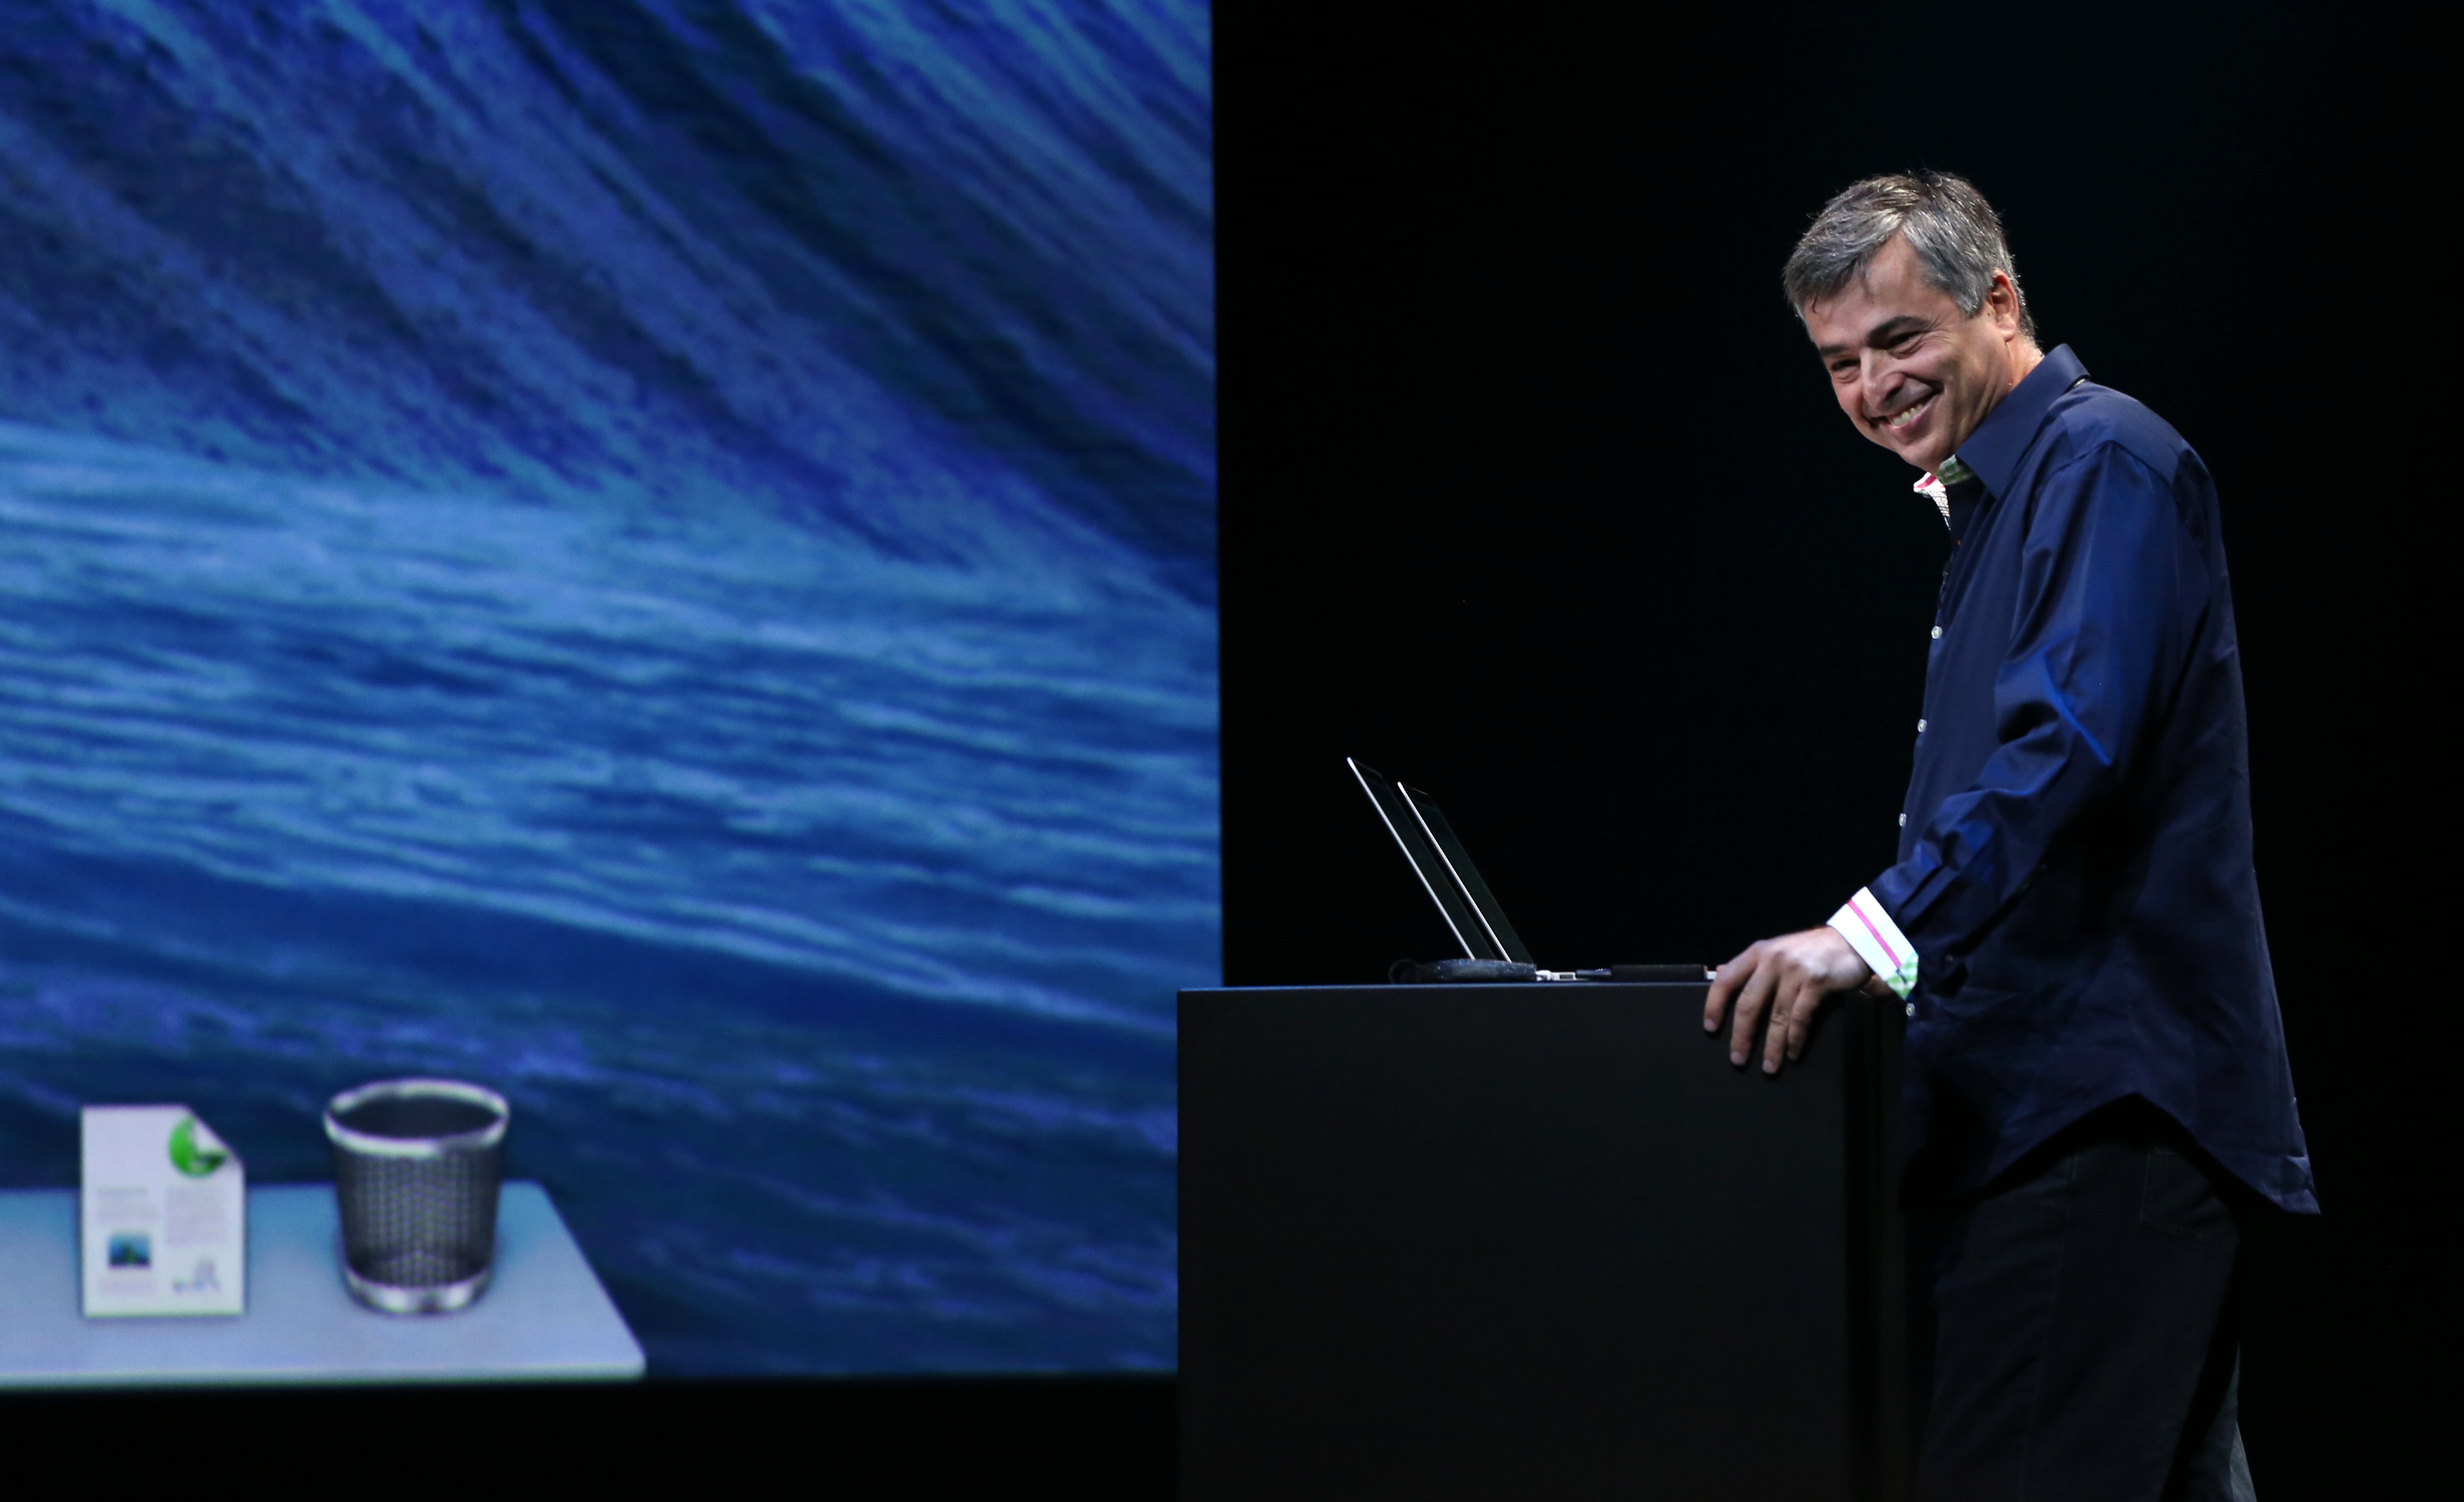 Eddy Cue, Apple Inc. Senior Vice President of Internet Software and Services, speaks during an Apple event in San Francisco